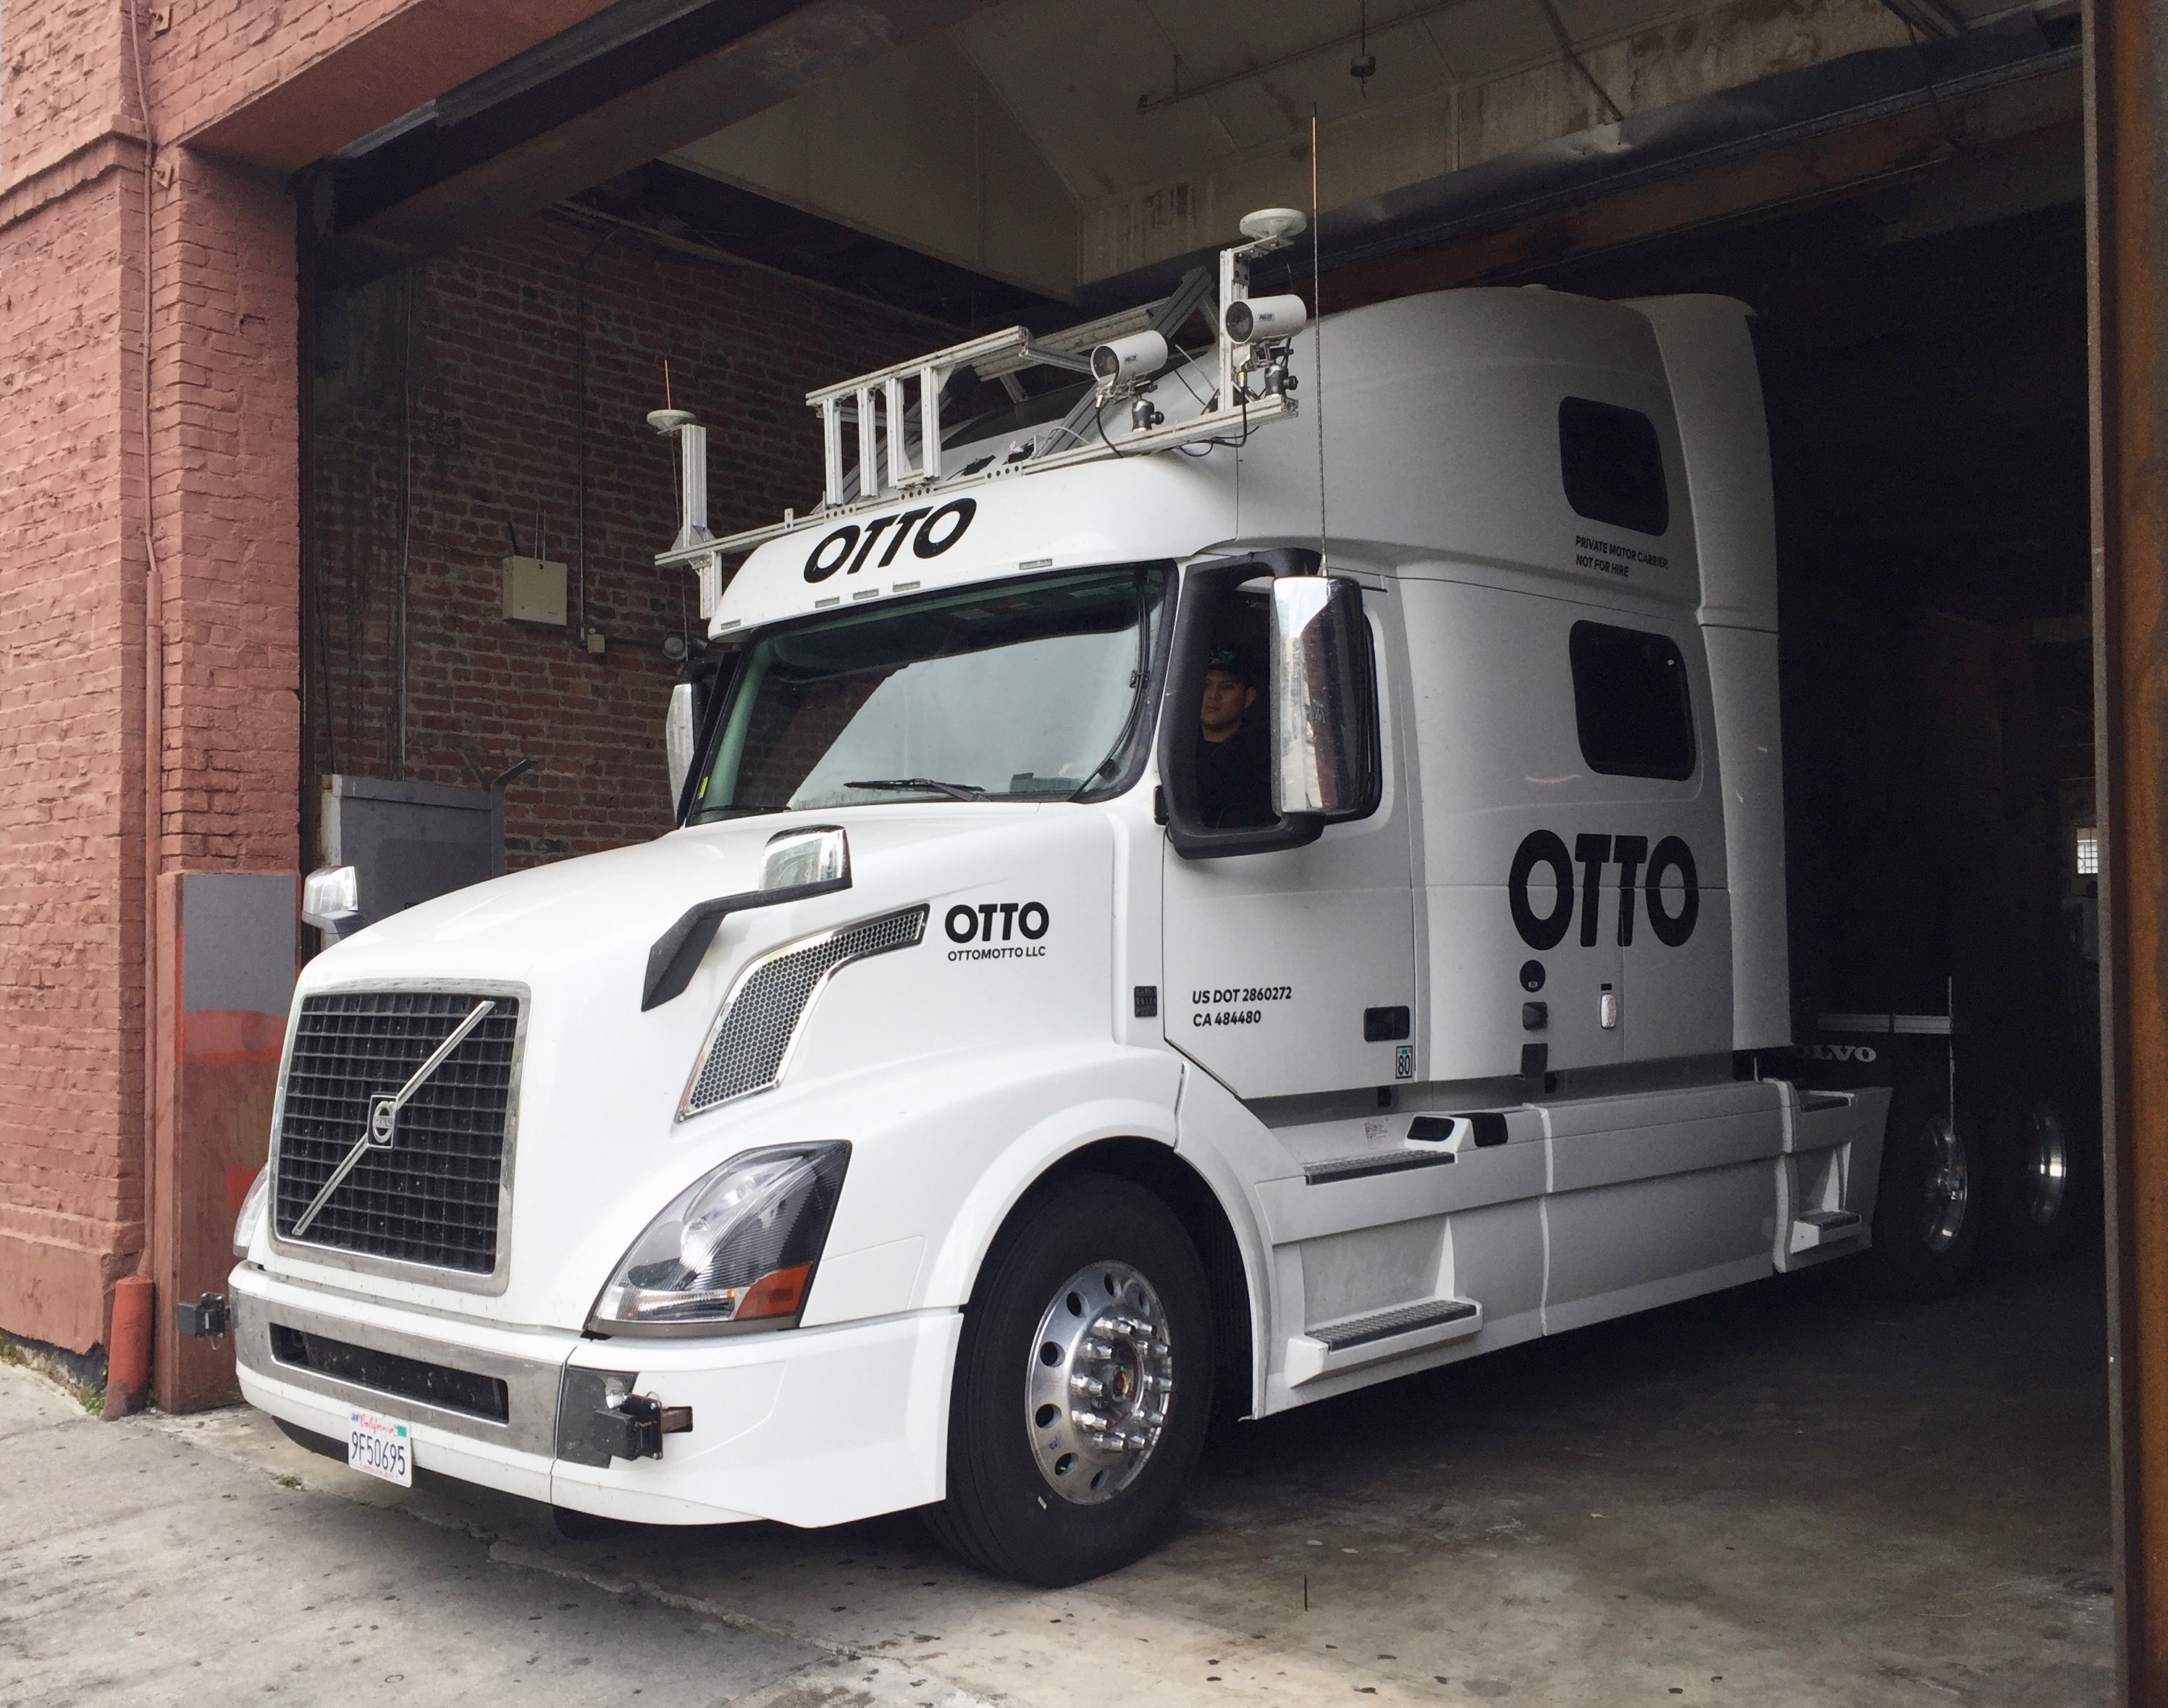 Replacing 3.5 million Americans with Self-driving Trucks